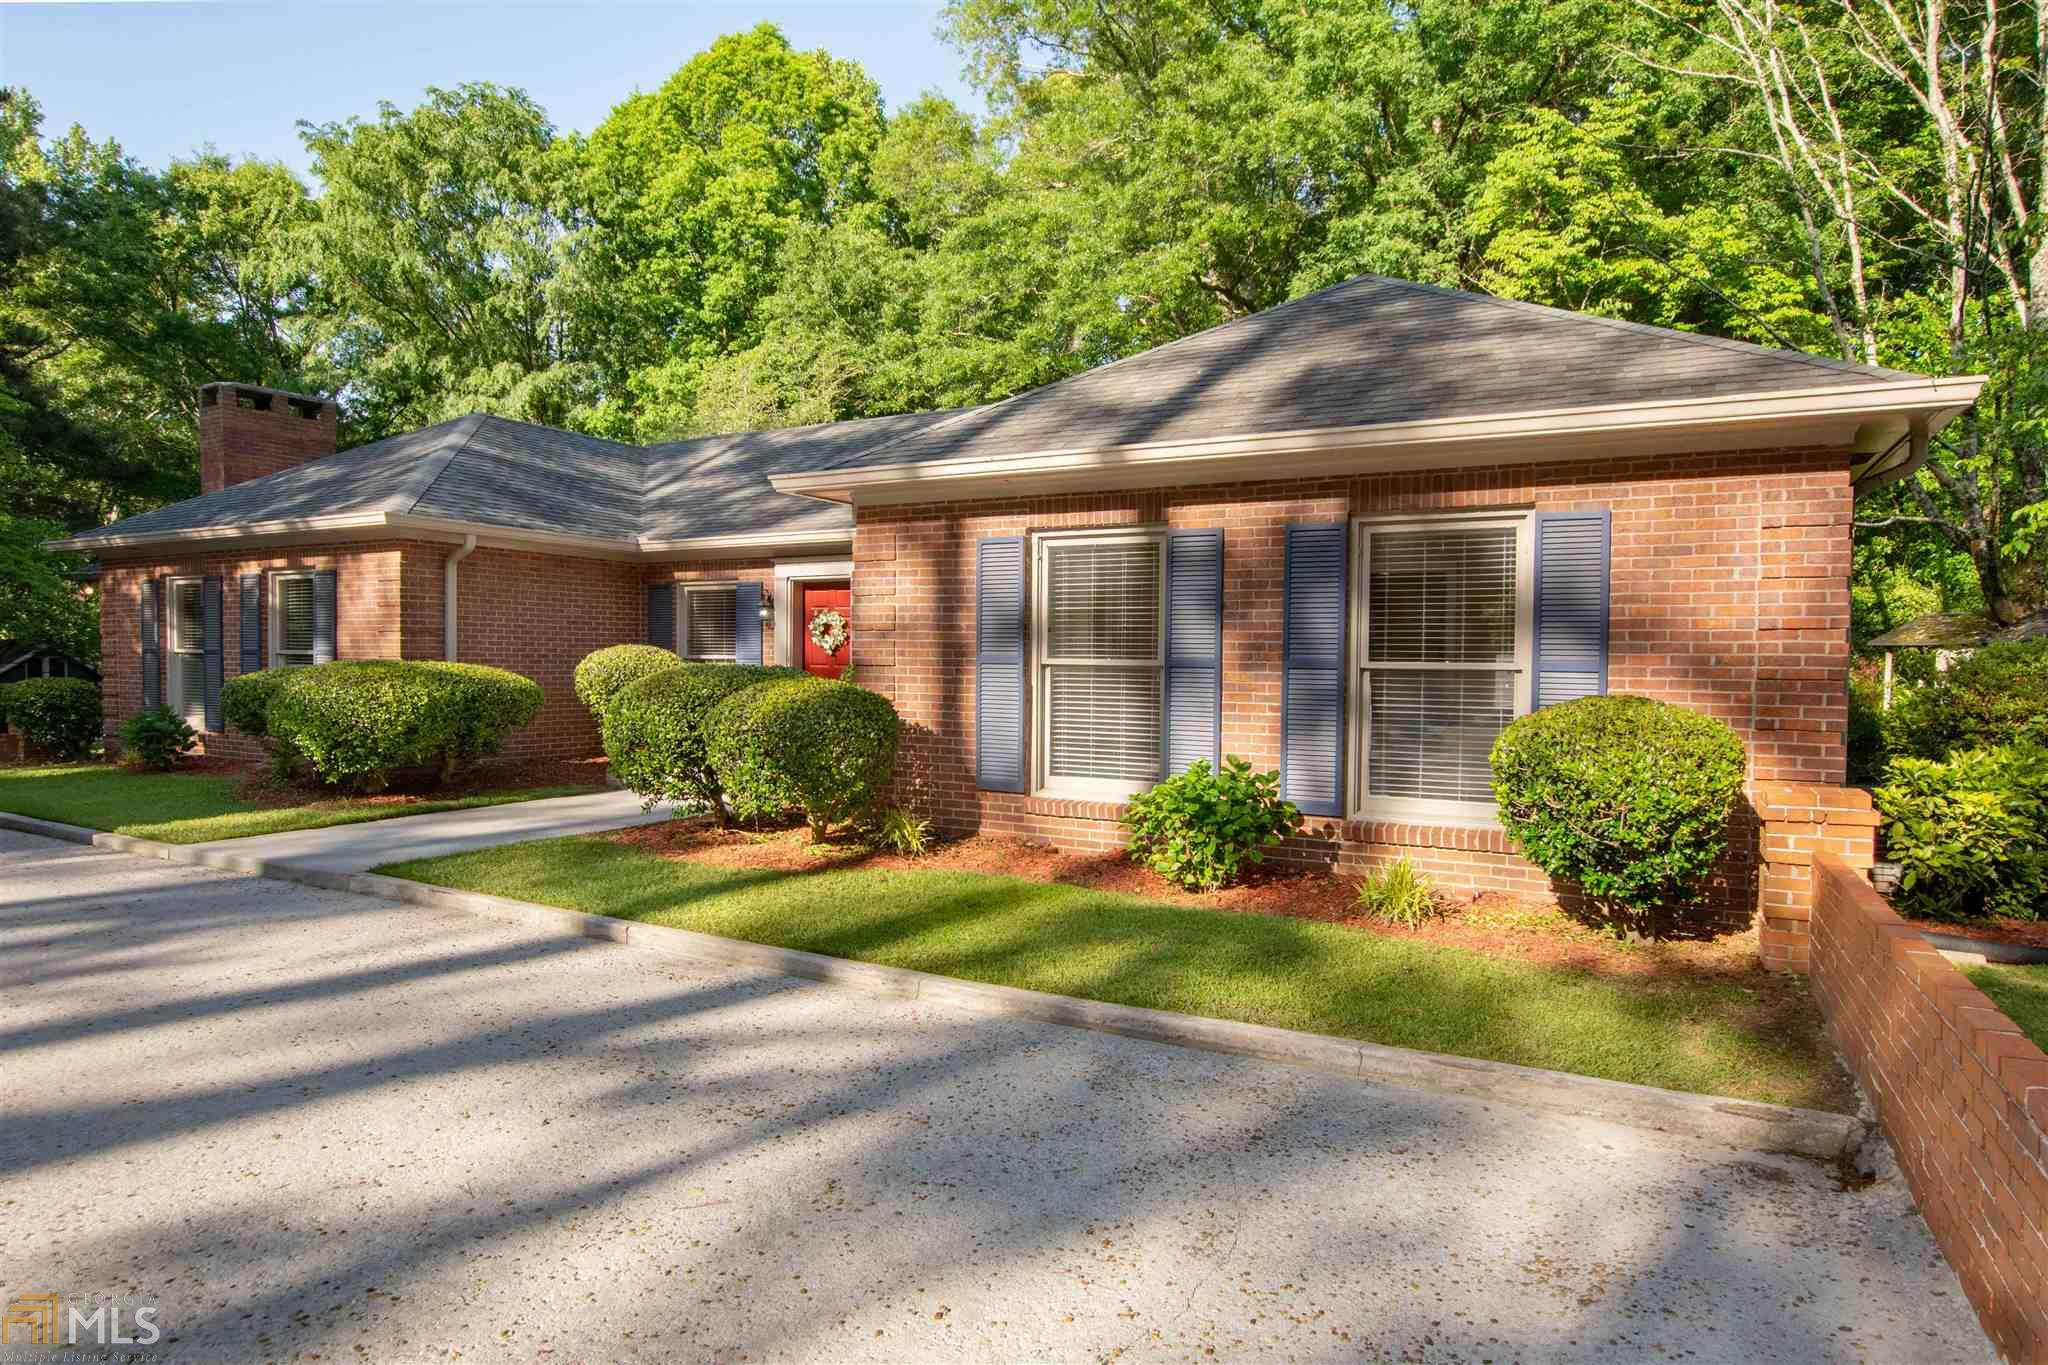 Image for property 1415 Springwood, Conyers, GA 30012-4238